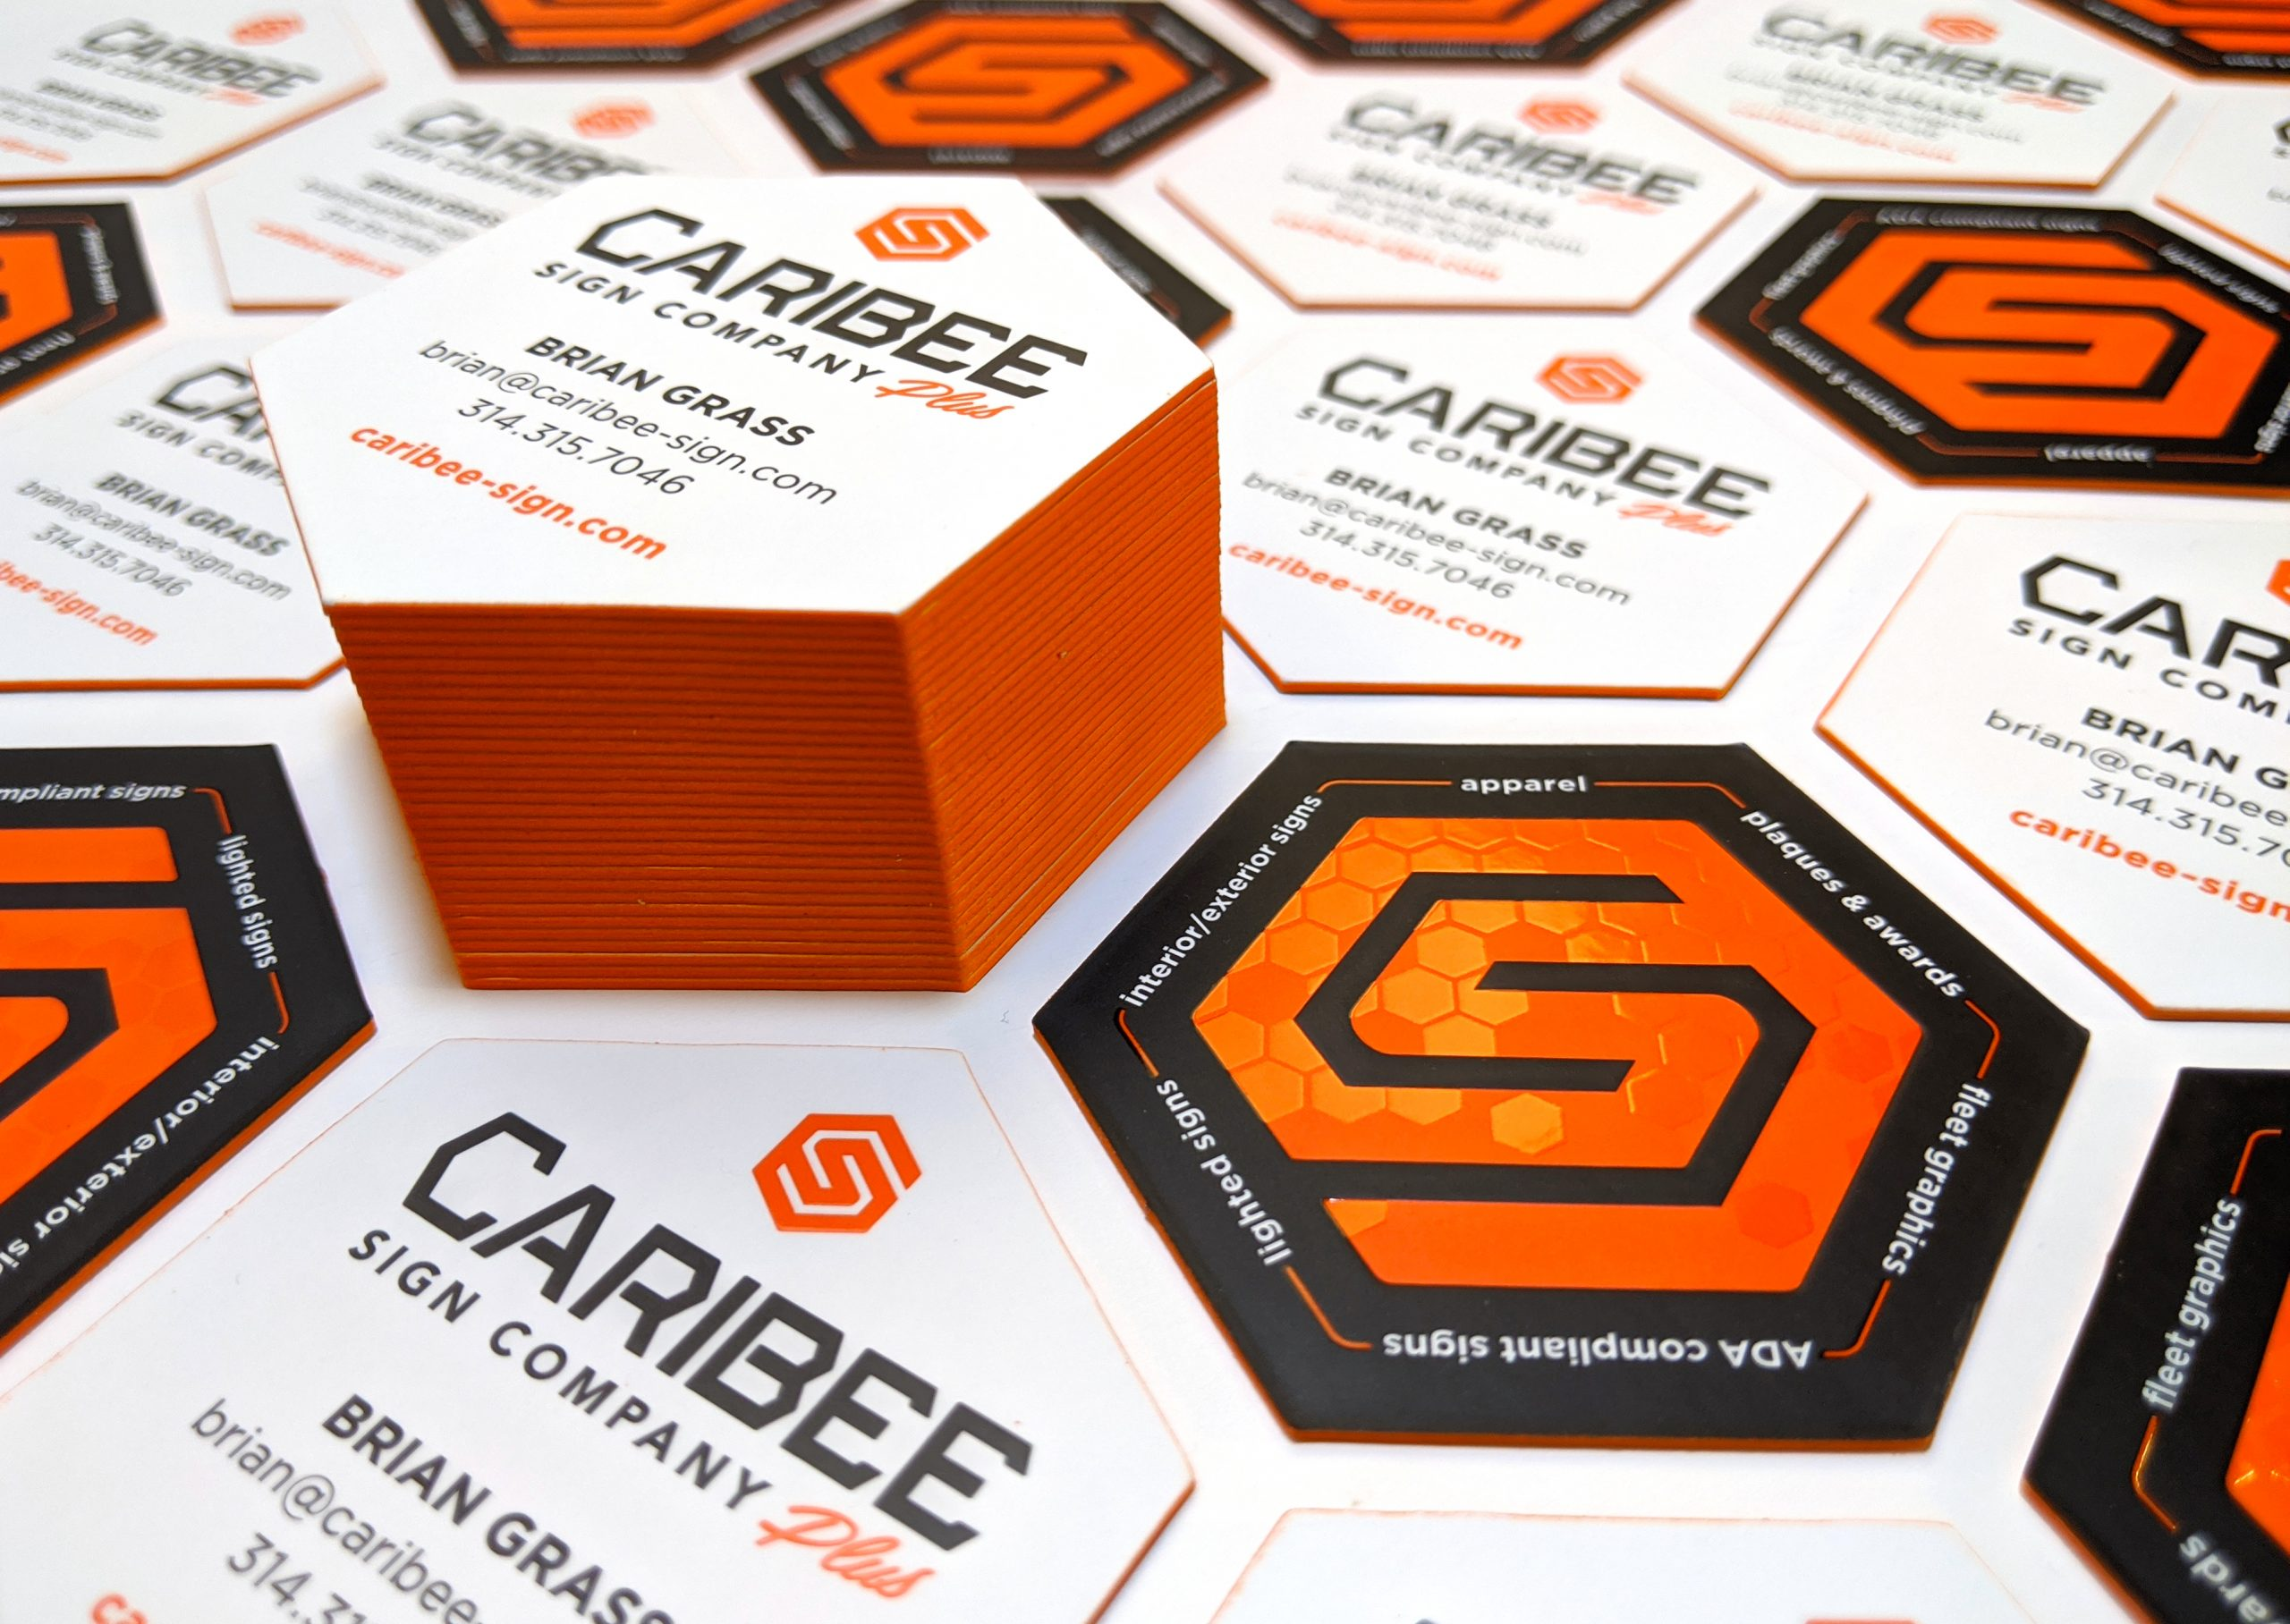 Caribee business cards